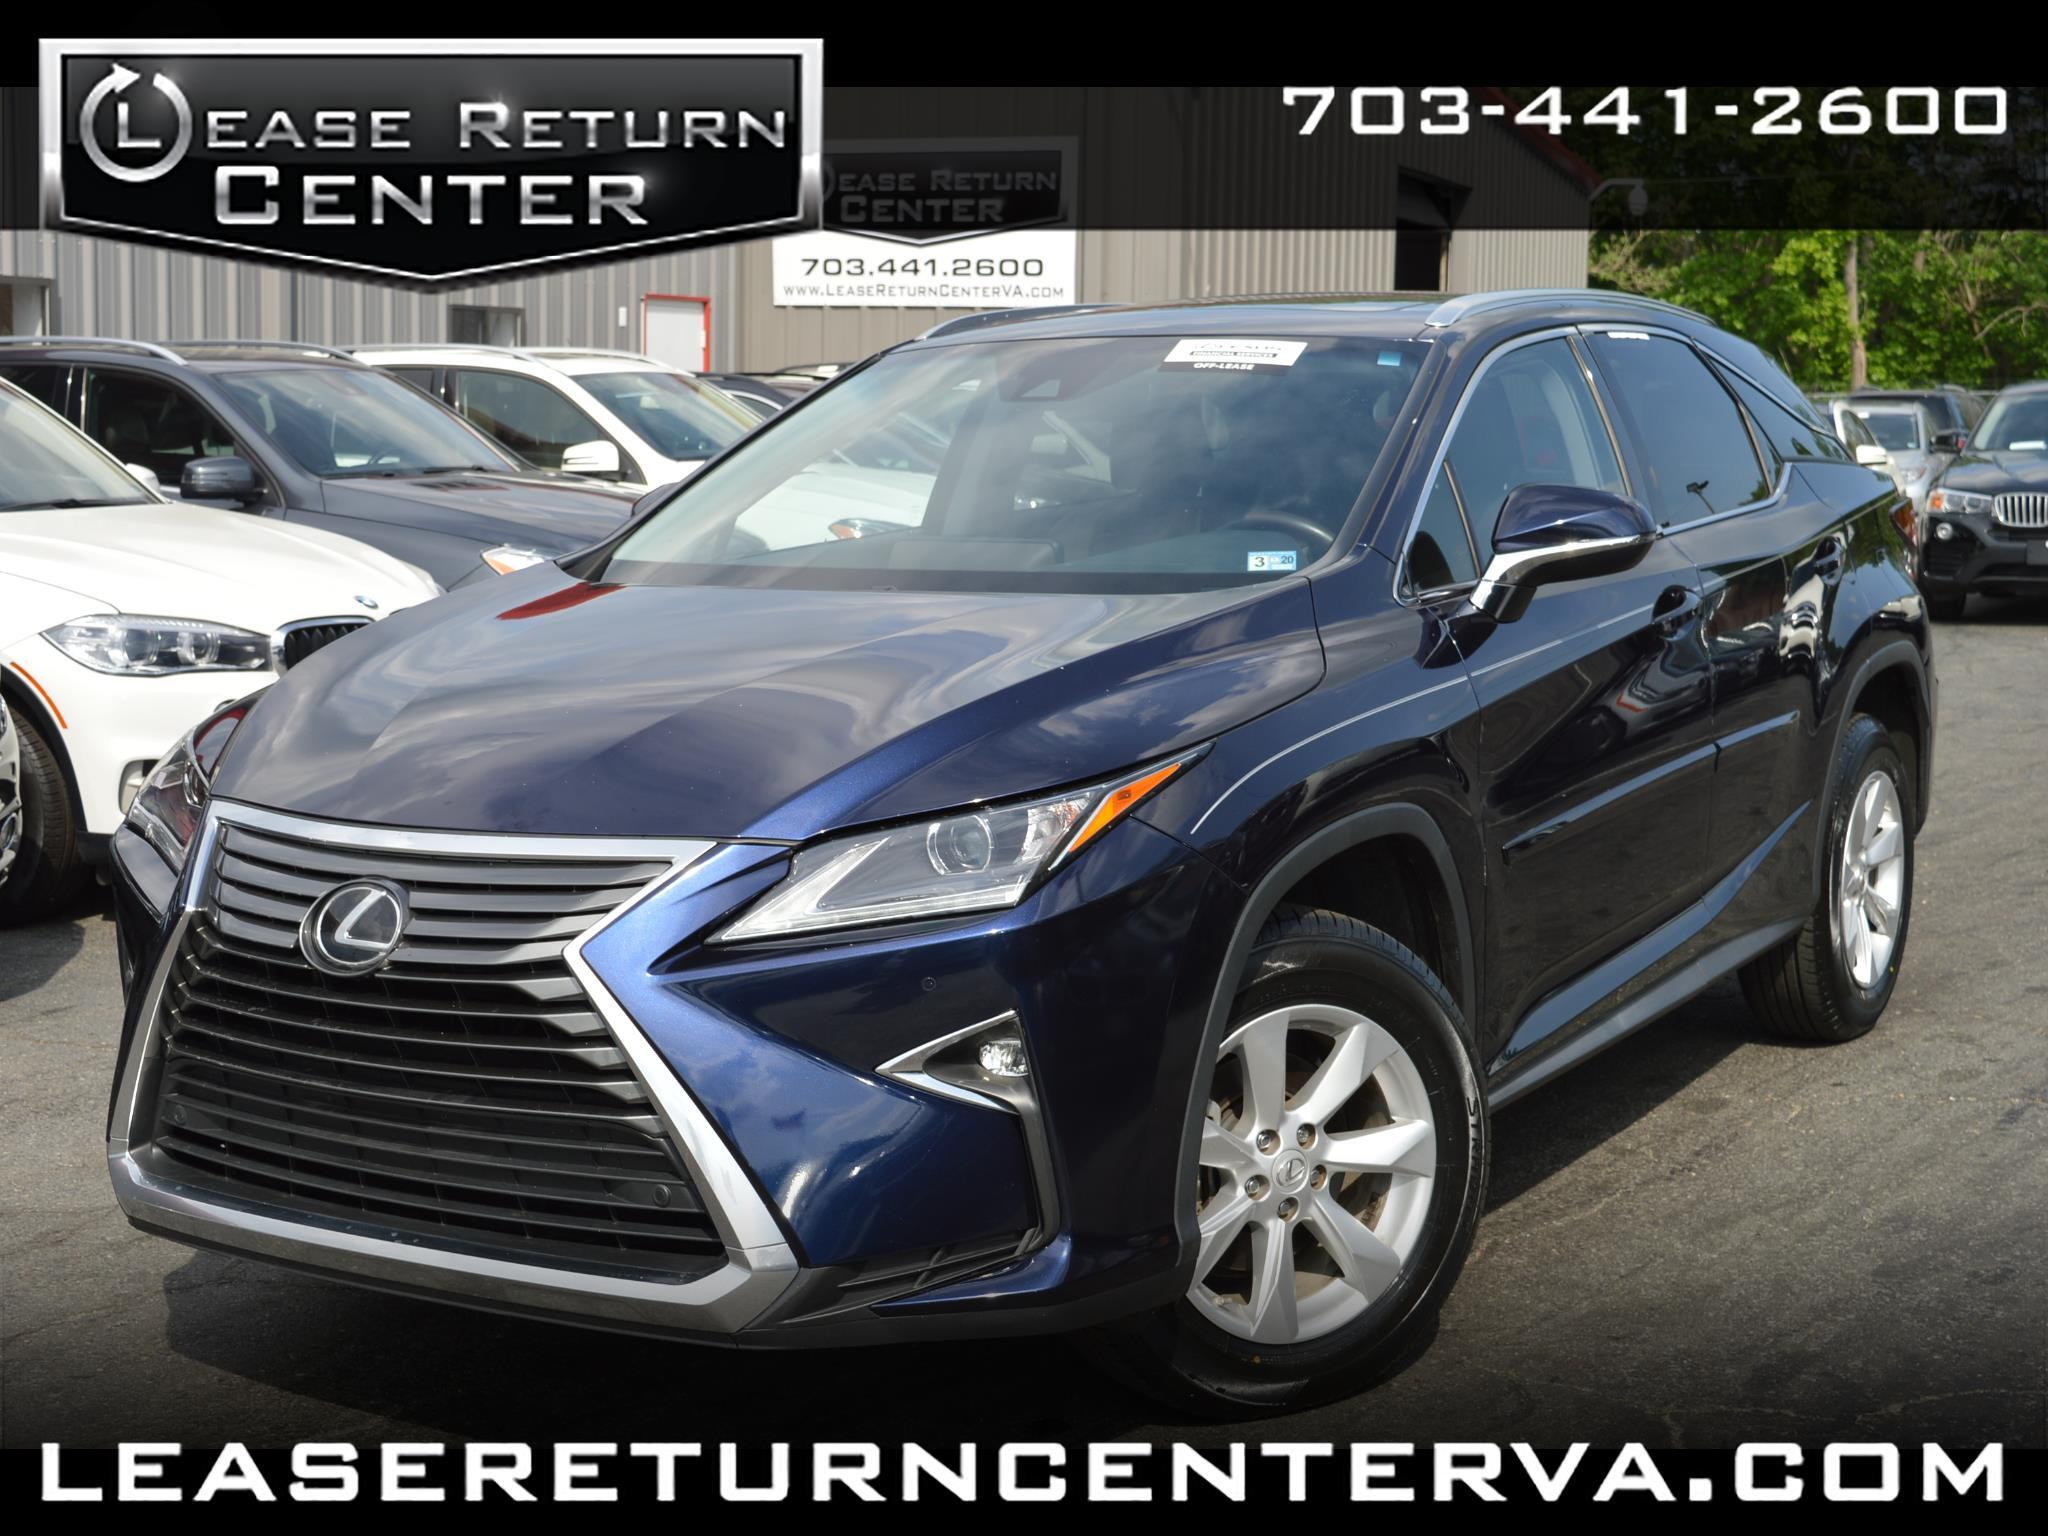 2016 Lexus RX 350 AWD With Navigation System